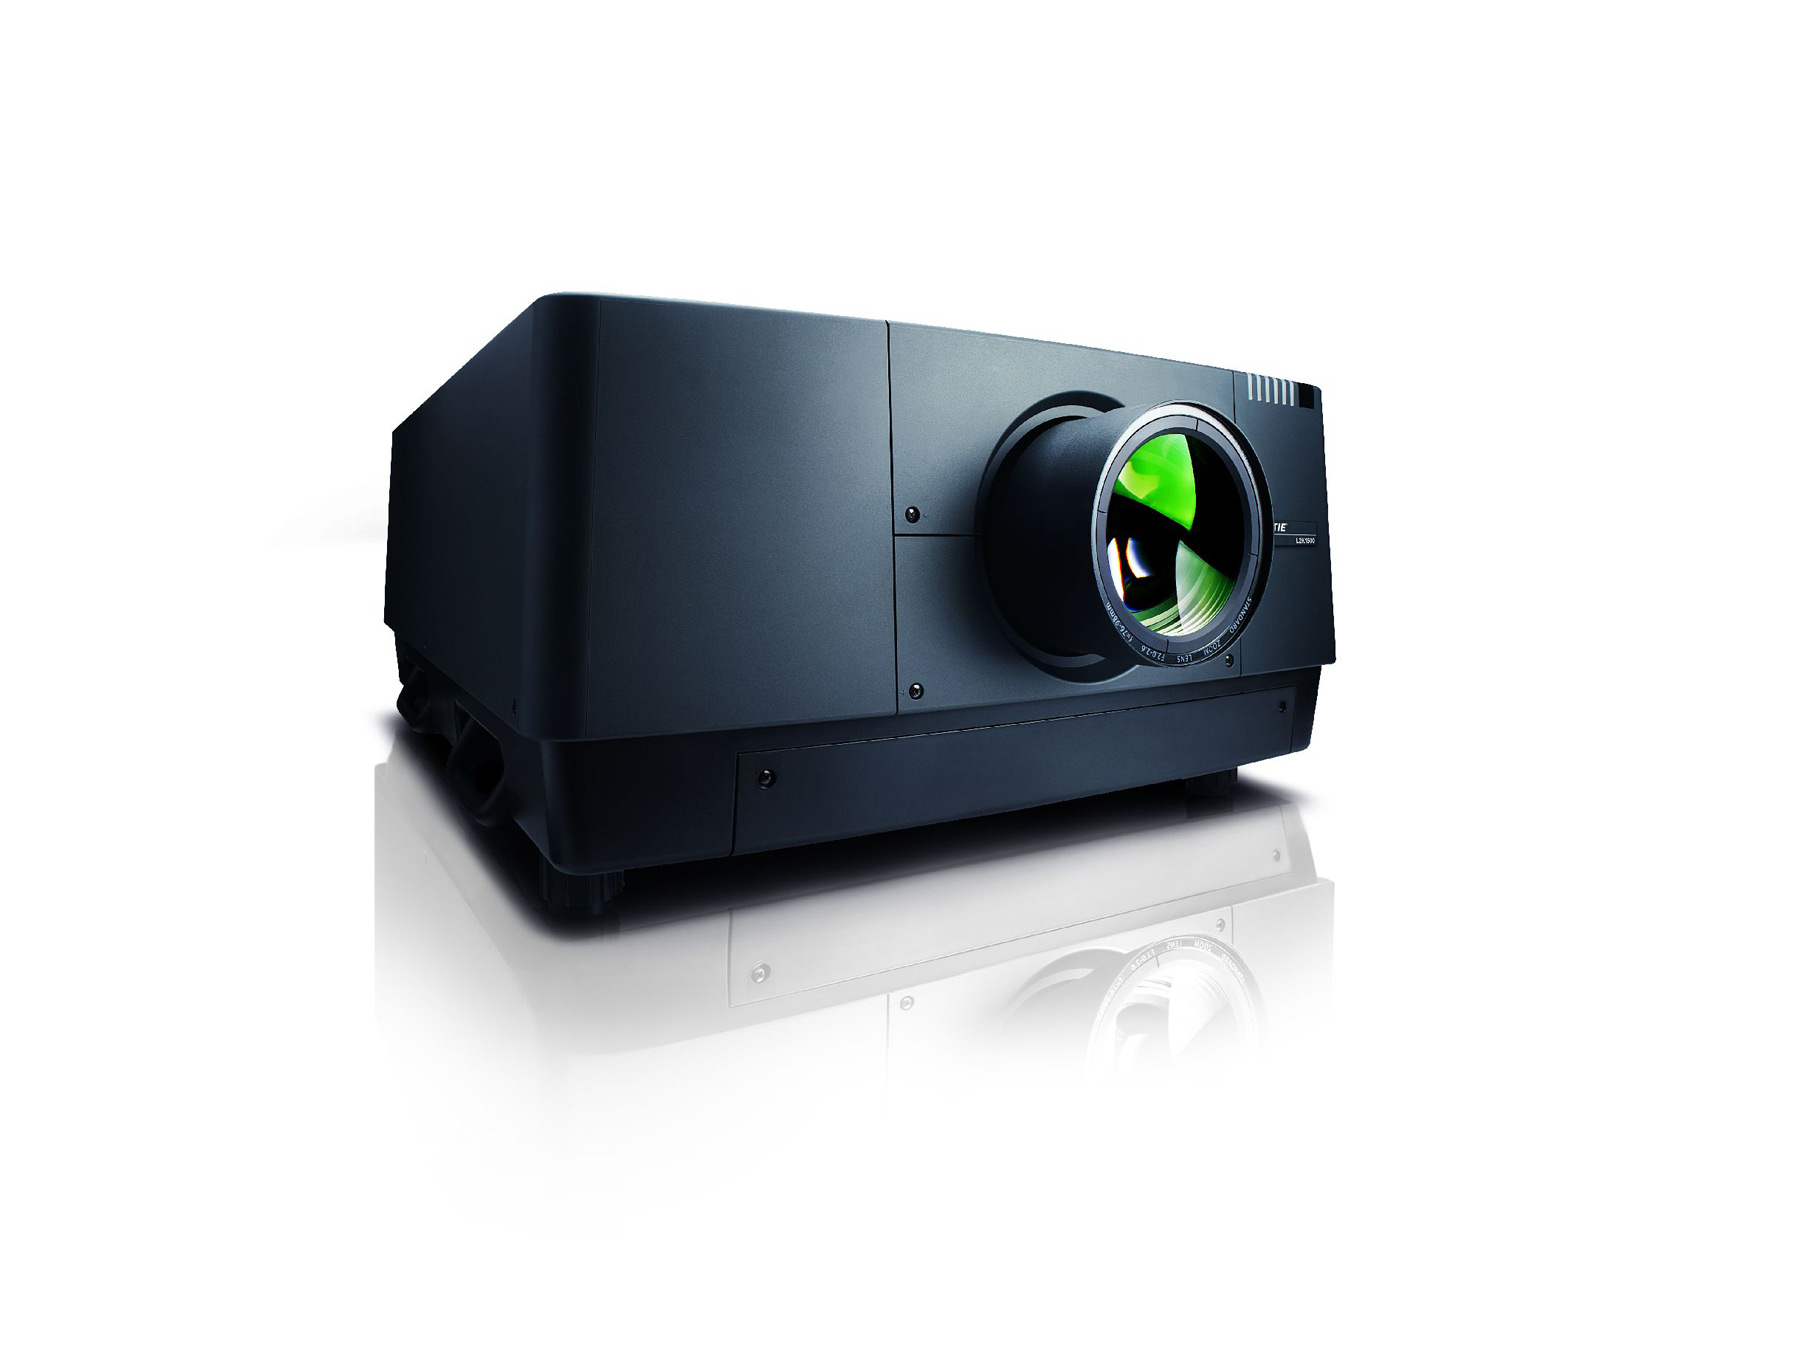 /globalassets/.catalog/products/images/christie-l2k1500/gallery/christie-l2k-1500-3-lcd-digital-projector-image-15.jpg